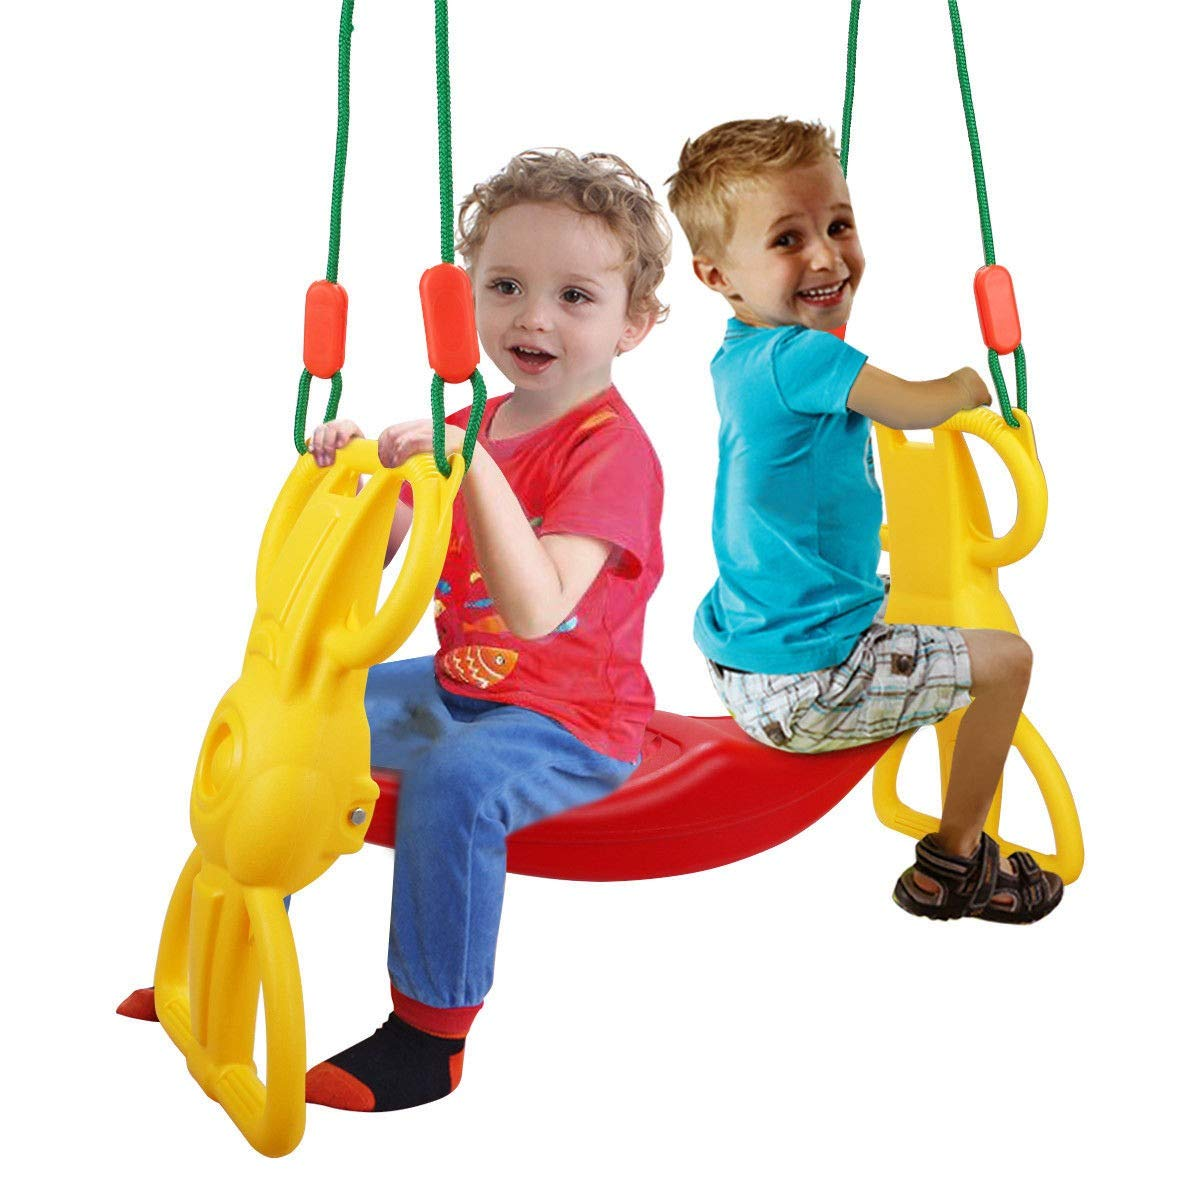 Back to Back Rider Glider Swing For 2 Kids w/ Hangers by Apontus (Image #4)